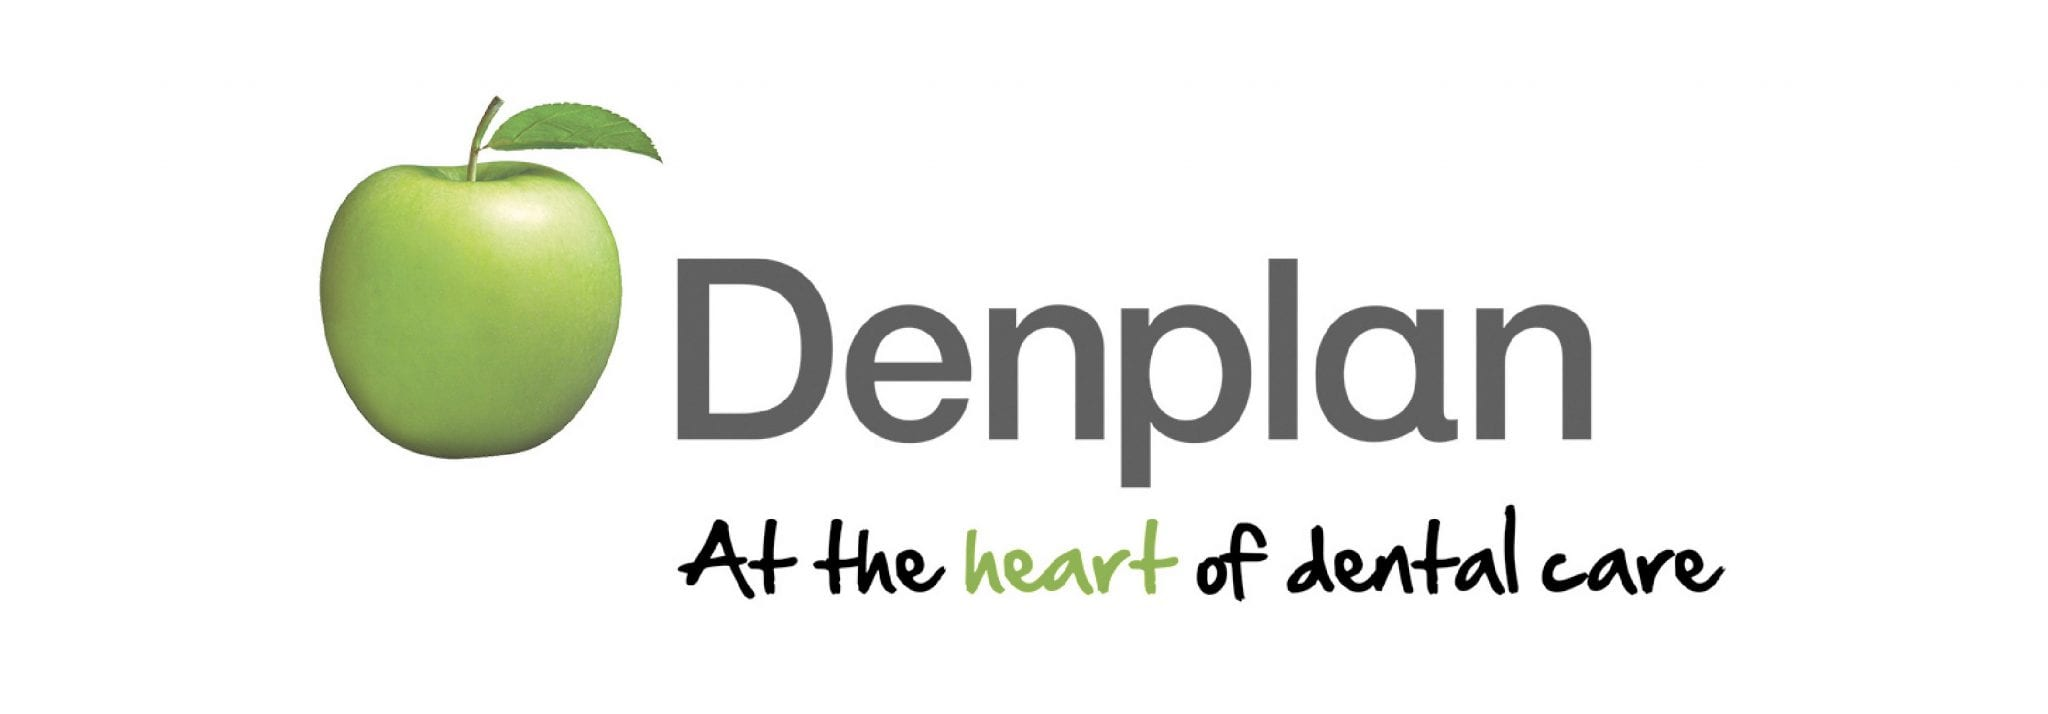 Denplan Care at Rock House Dental Practice in Tettenhall Wolverhampton